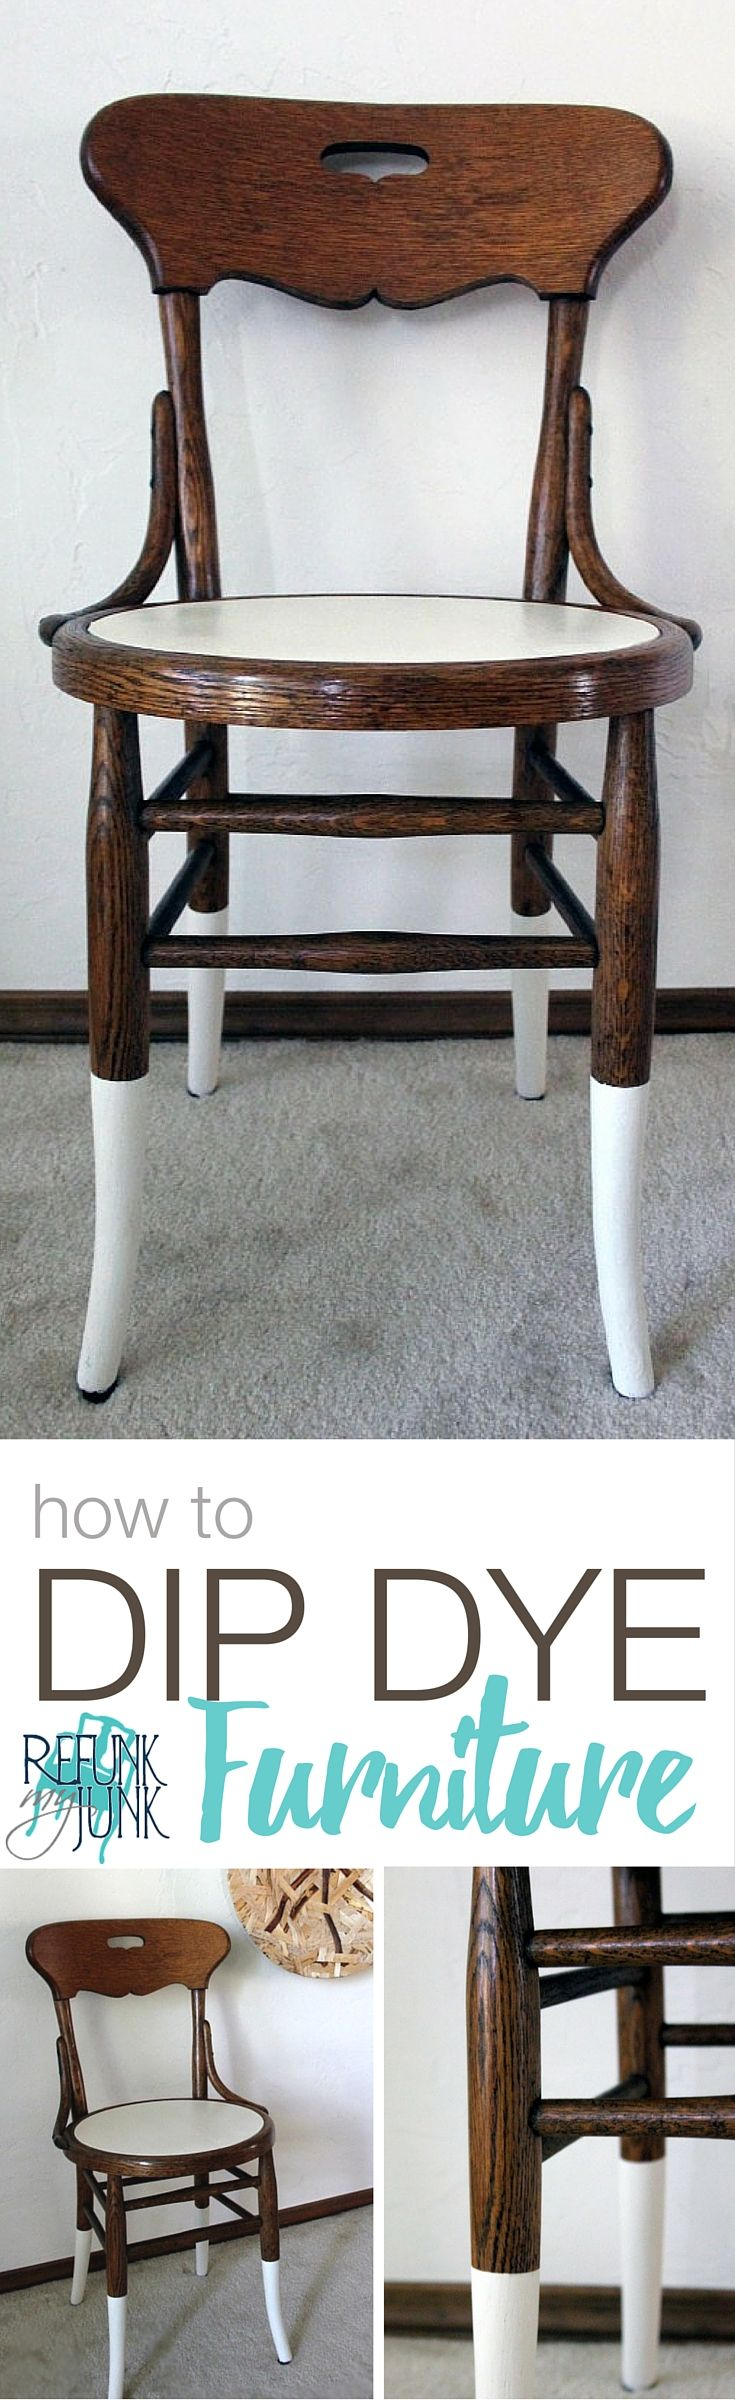 How to Dip Dye Furniture! It's a modern look and very simple! More Painted Furniture Ideas by Refunk My Junk